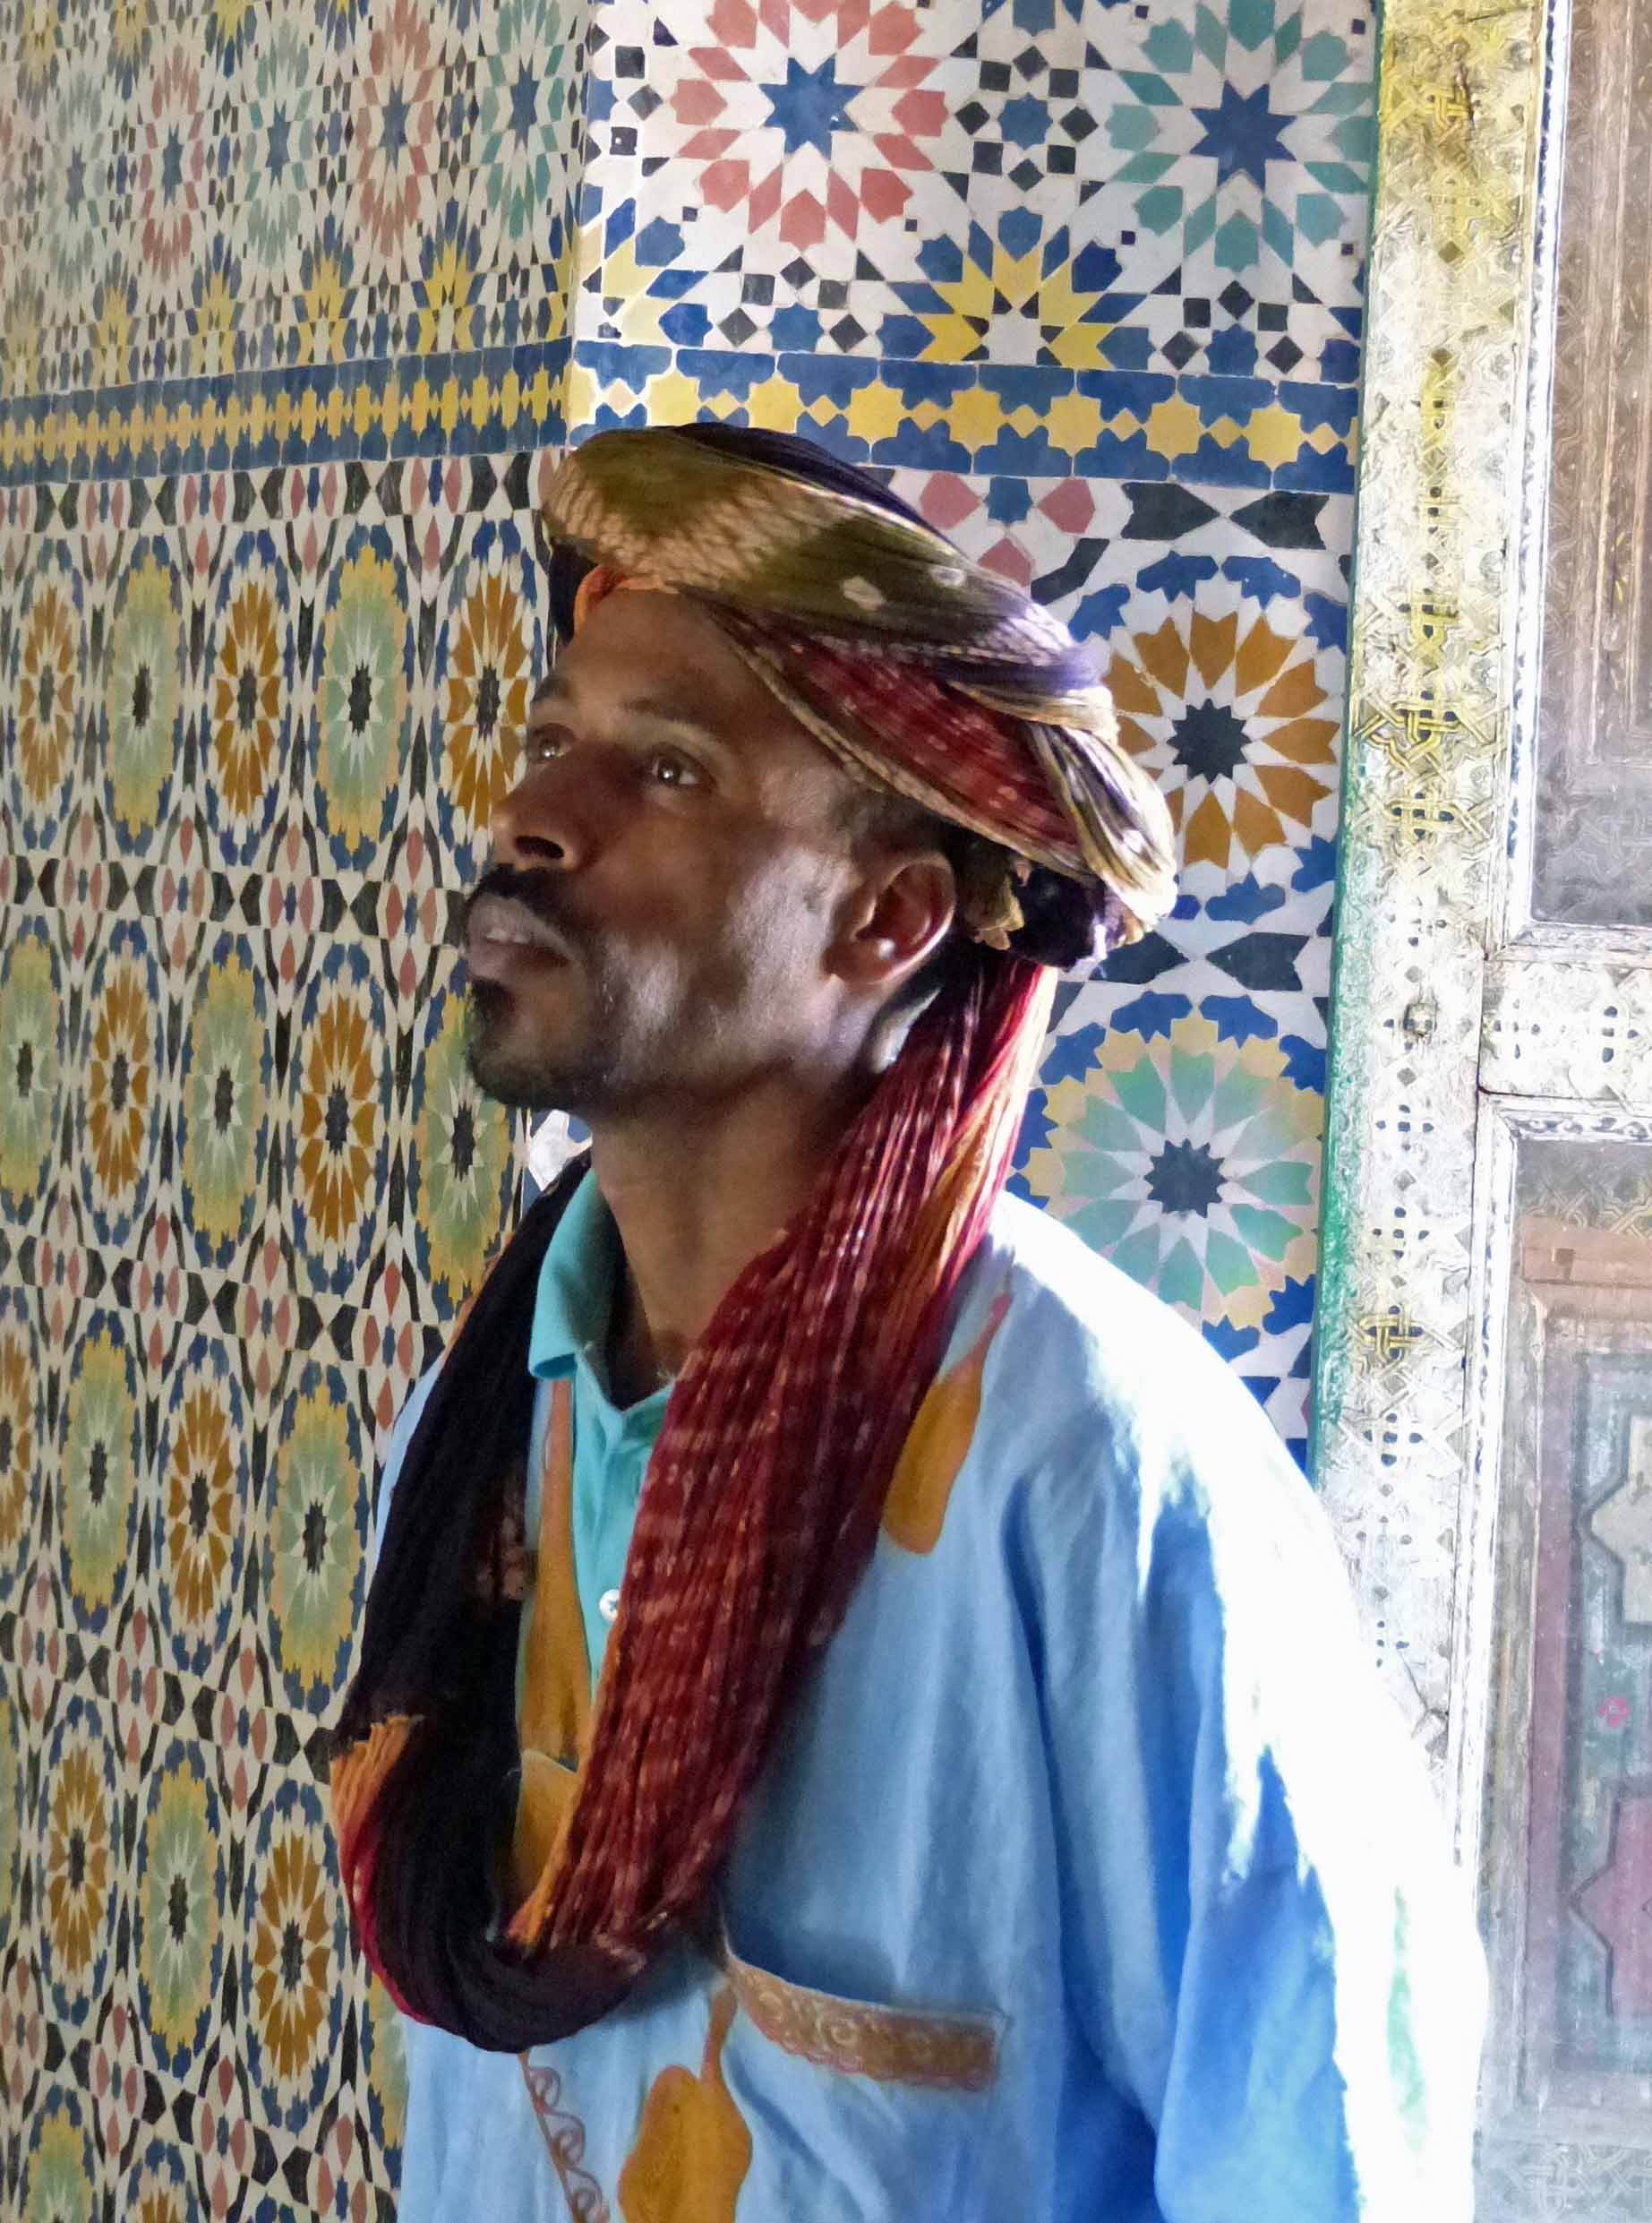 Man in blue robes in tiled room